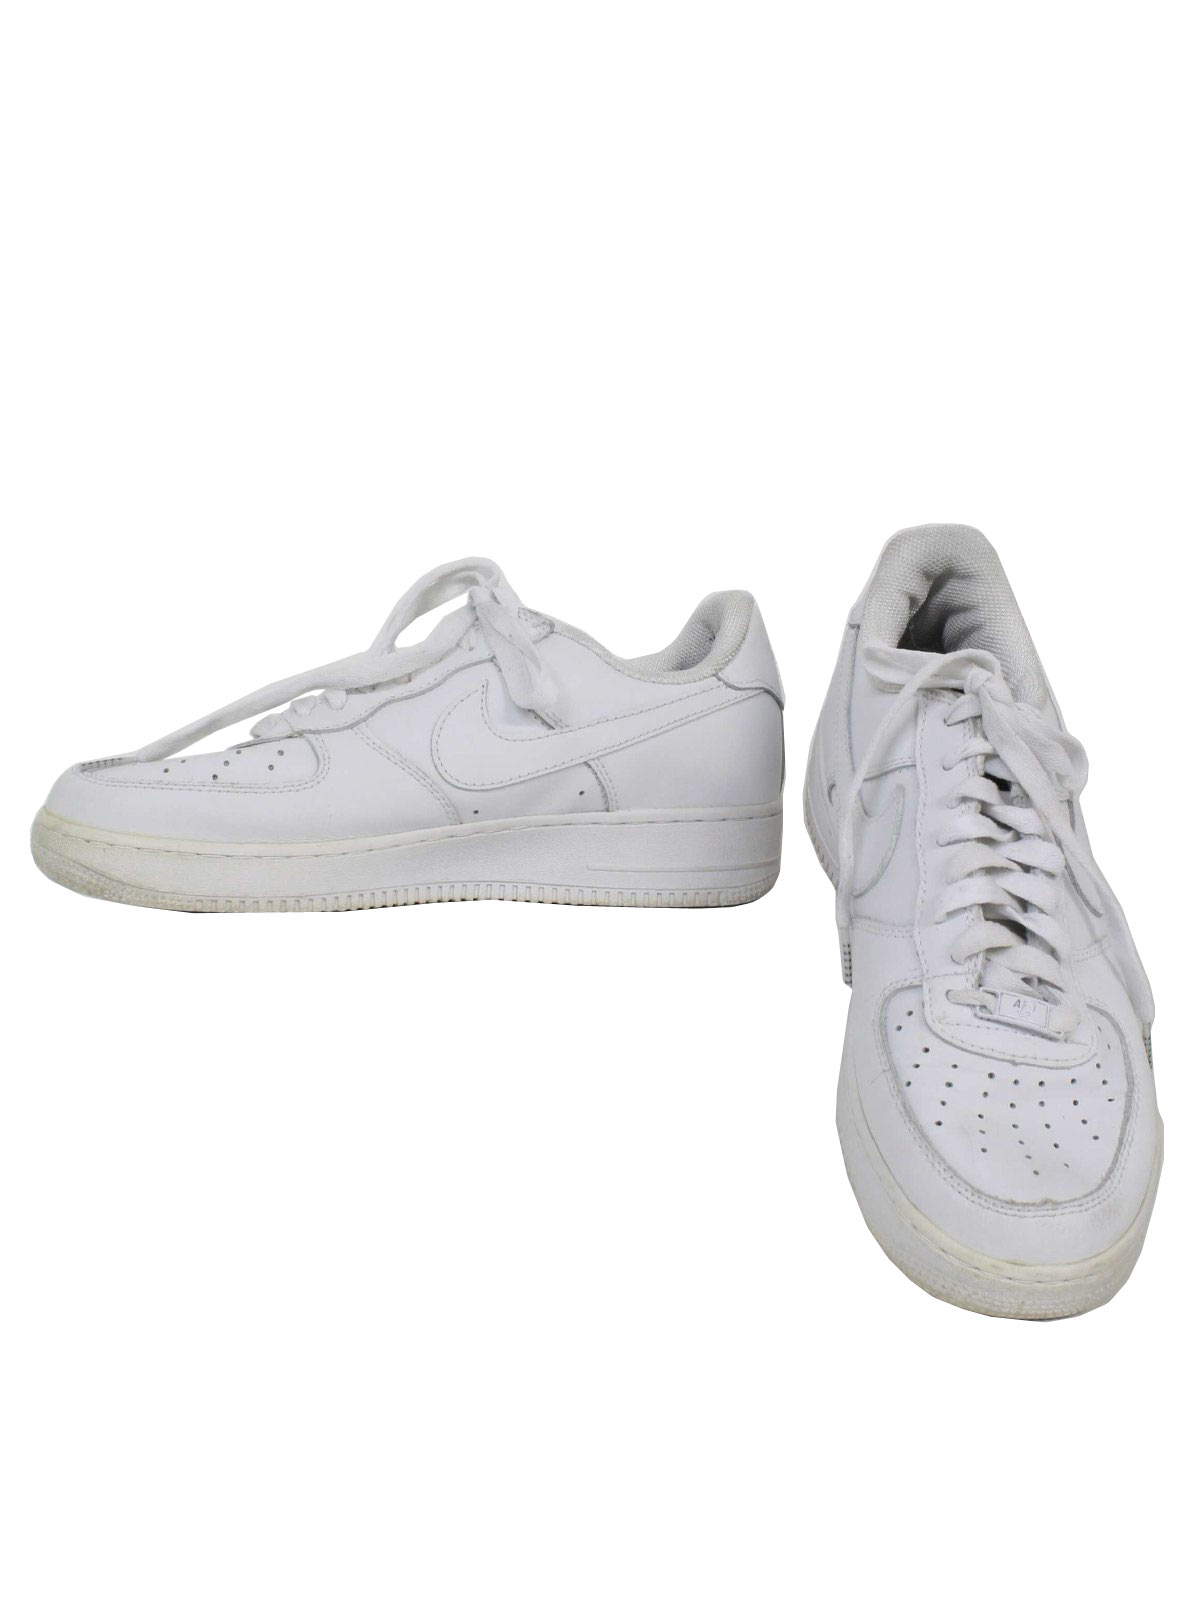 old school shoes nike old school sneakers white. Black Bedroom Furniture Sets. Home Design Ideas